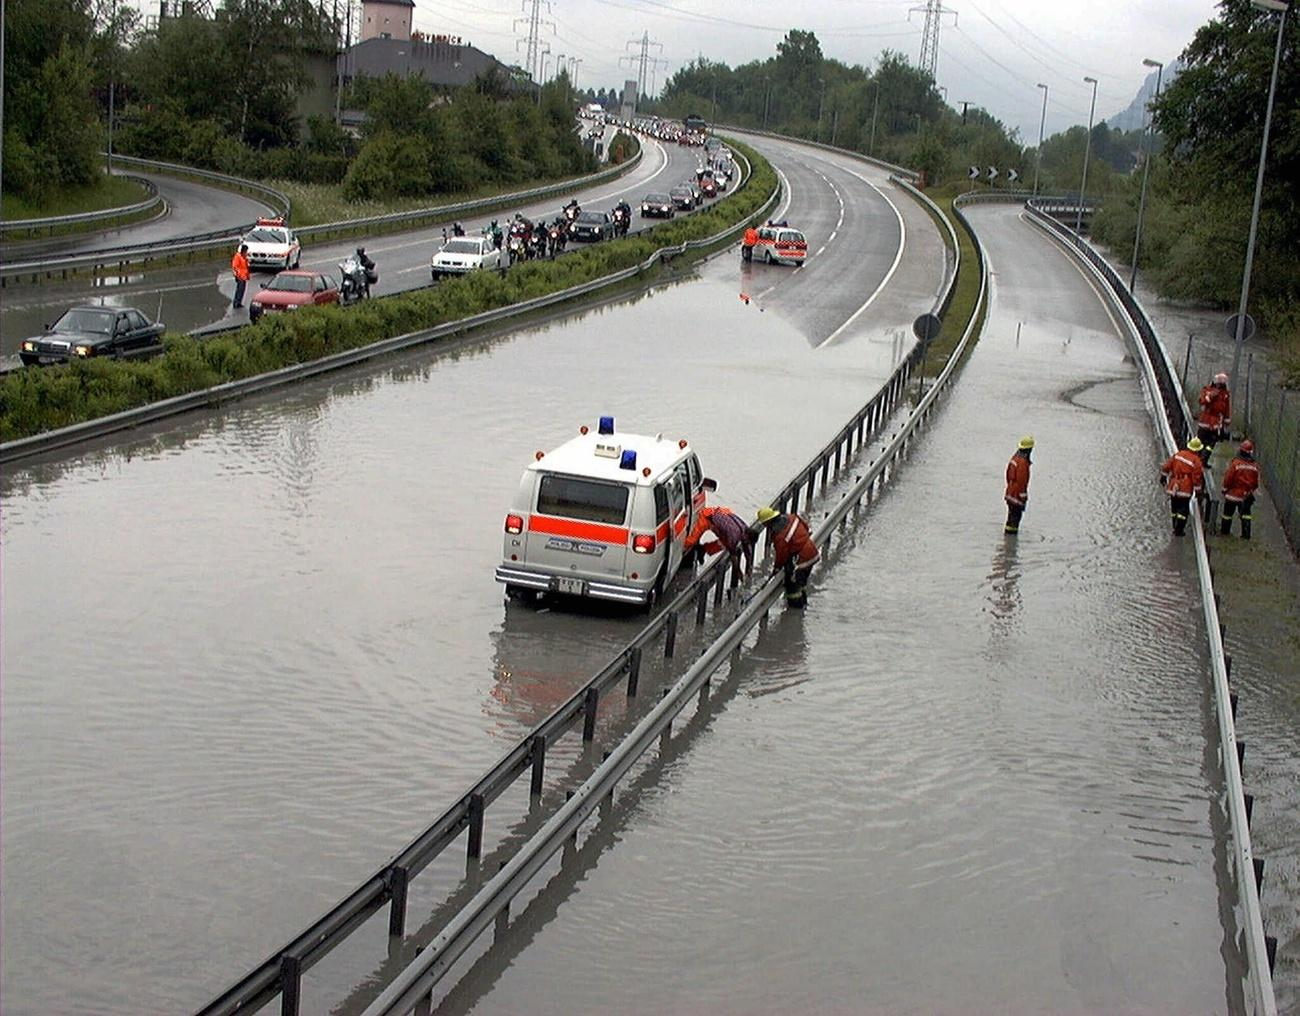 flooding of the motorway near Maienfeld.